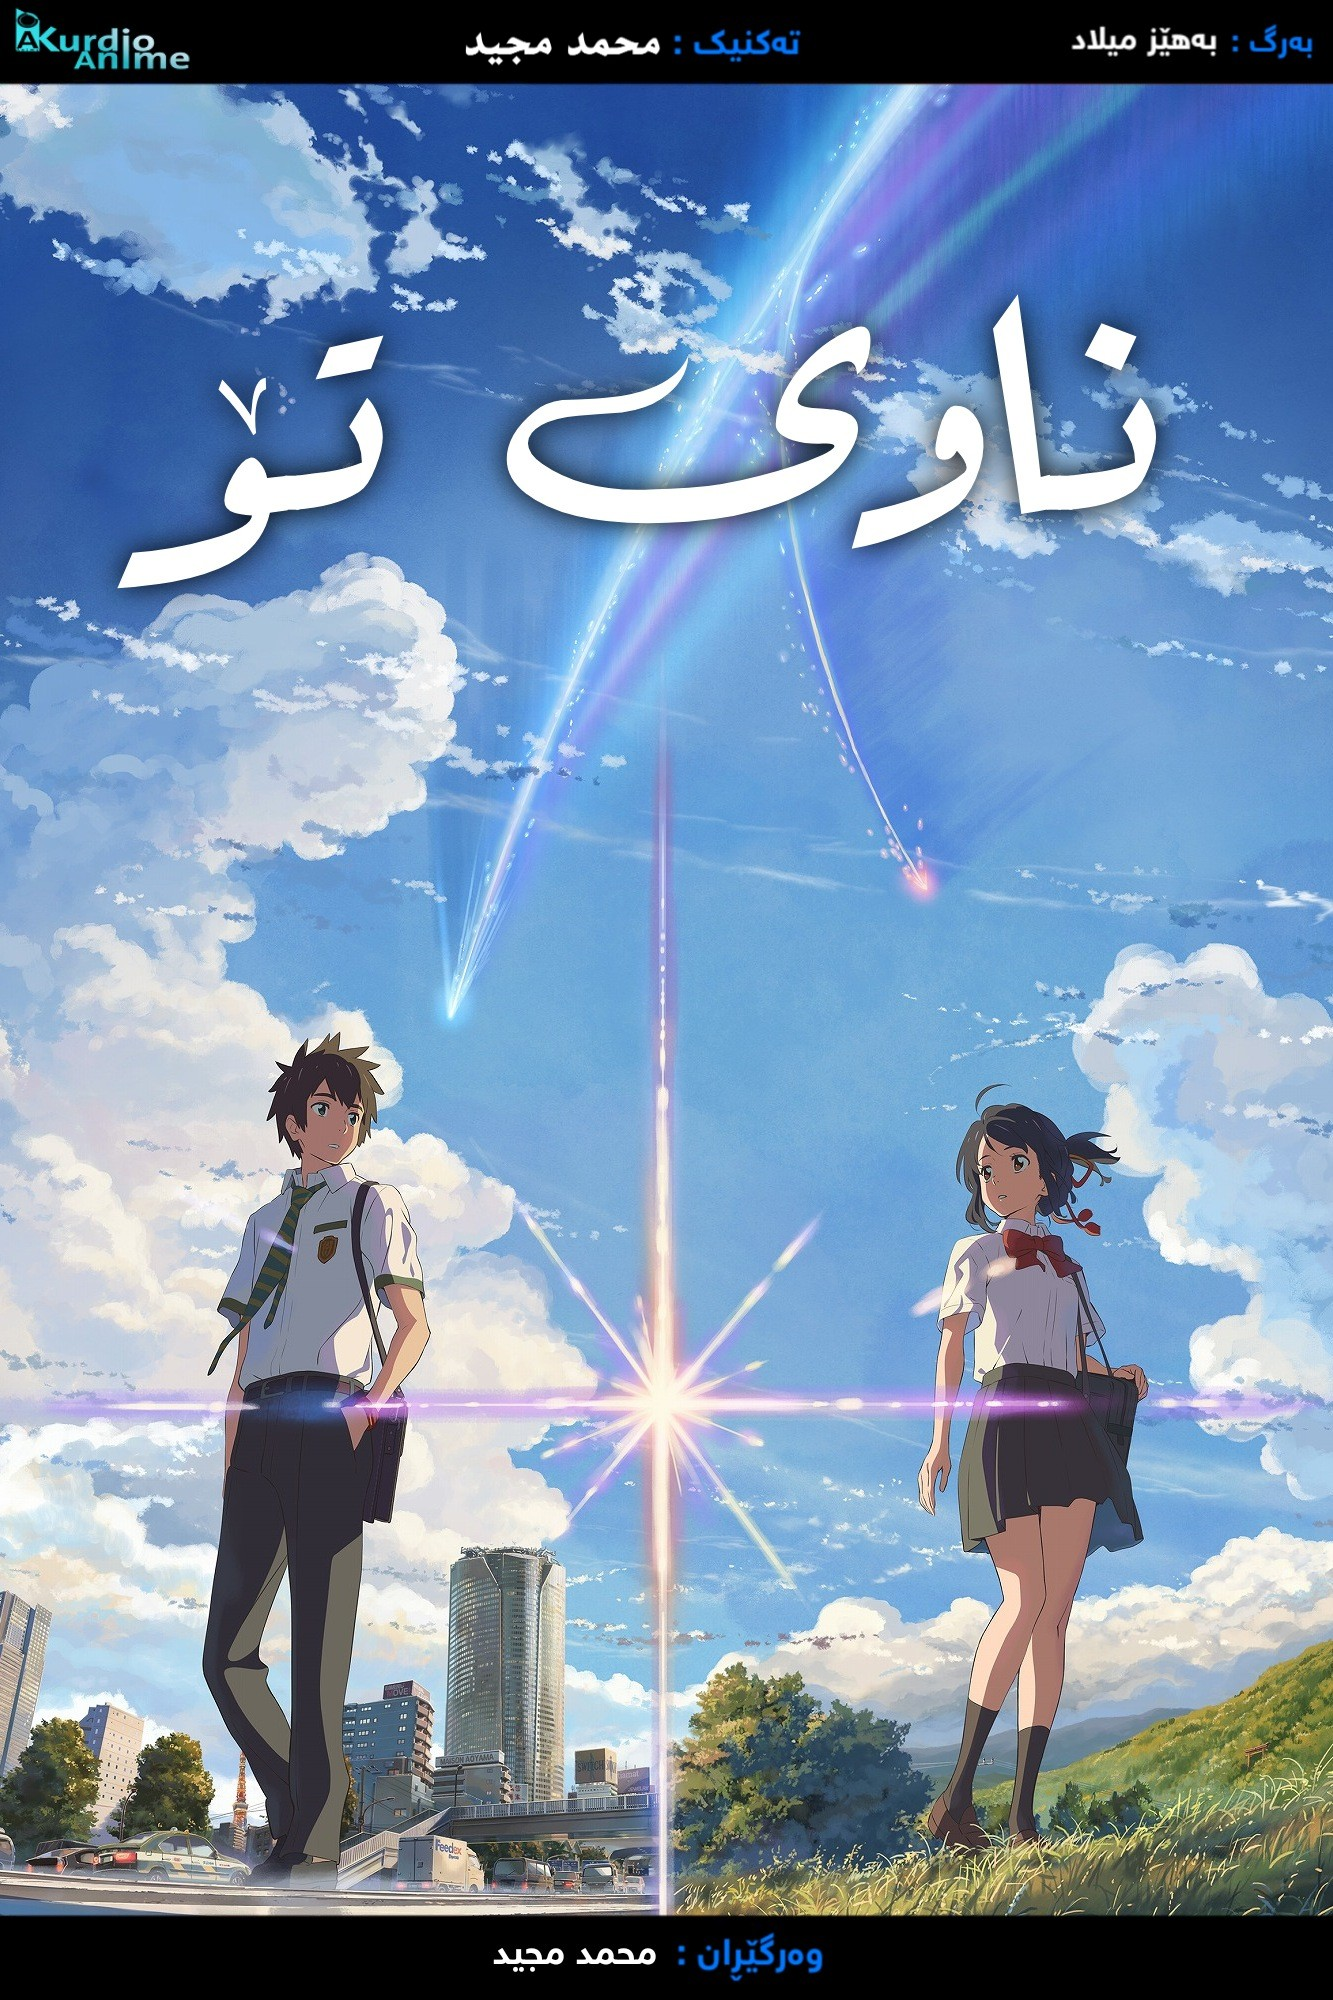 Kimi no Na wa (Your Name) Movie